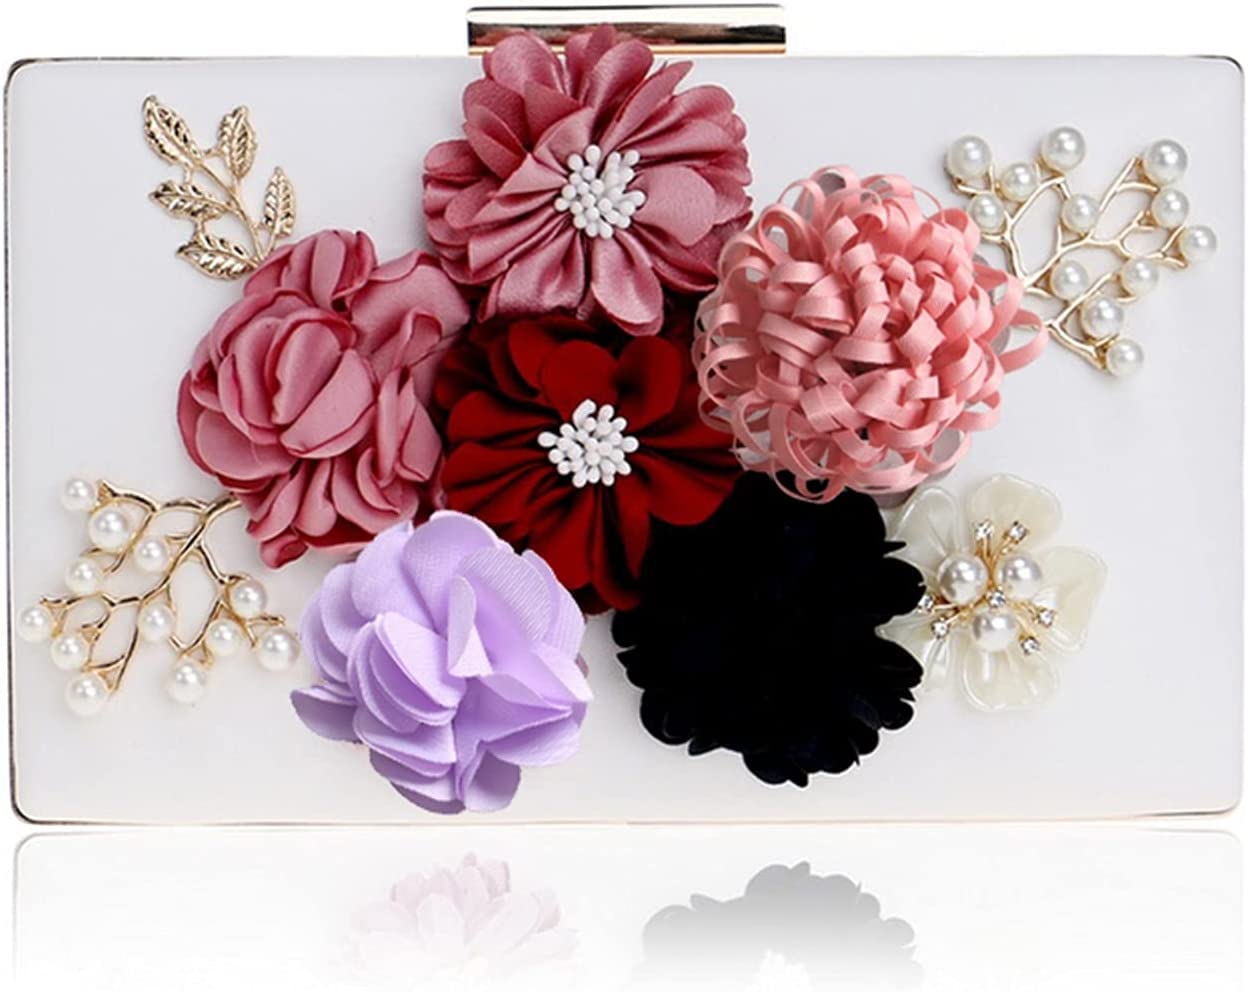 Evening Bag Women Clutch Bag Flower Beaded Evening Bags PU Leather Chain Shoulder Handbags Party Wedding Holder (Color : White, Size : Small)